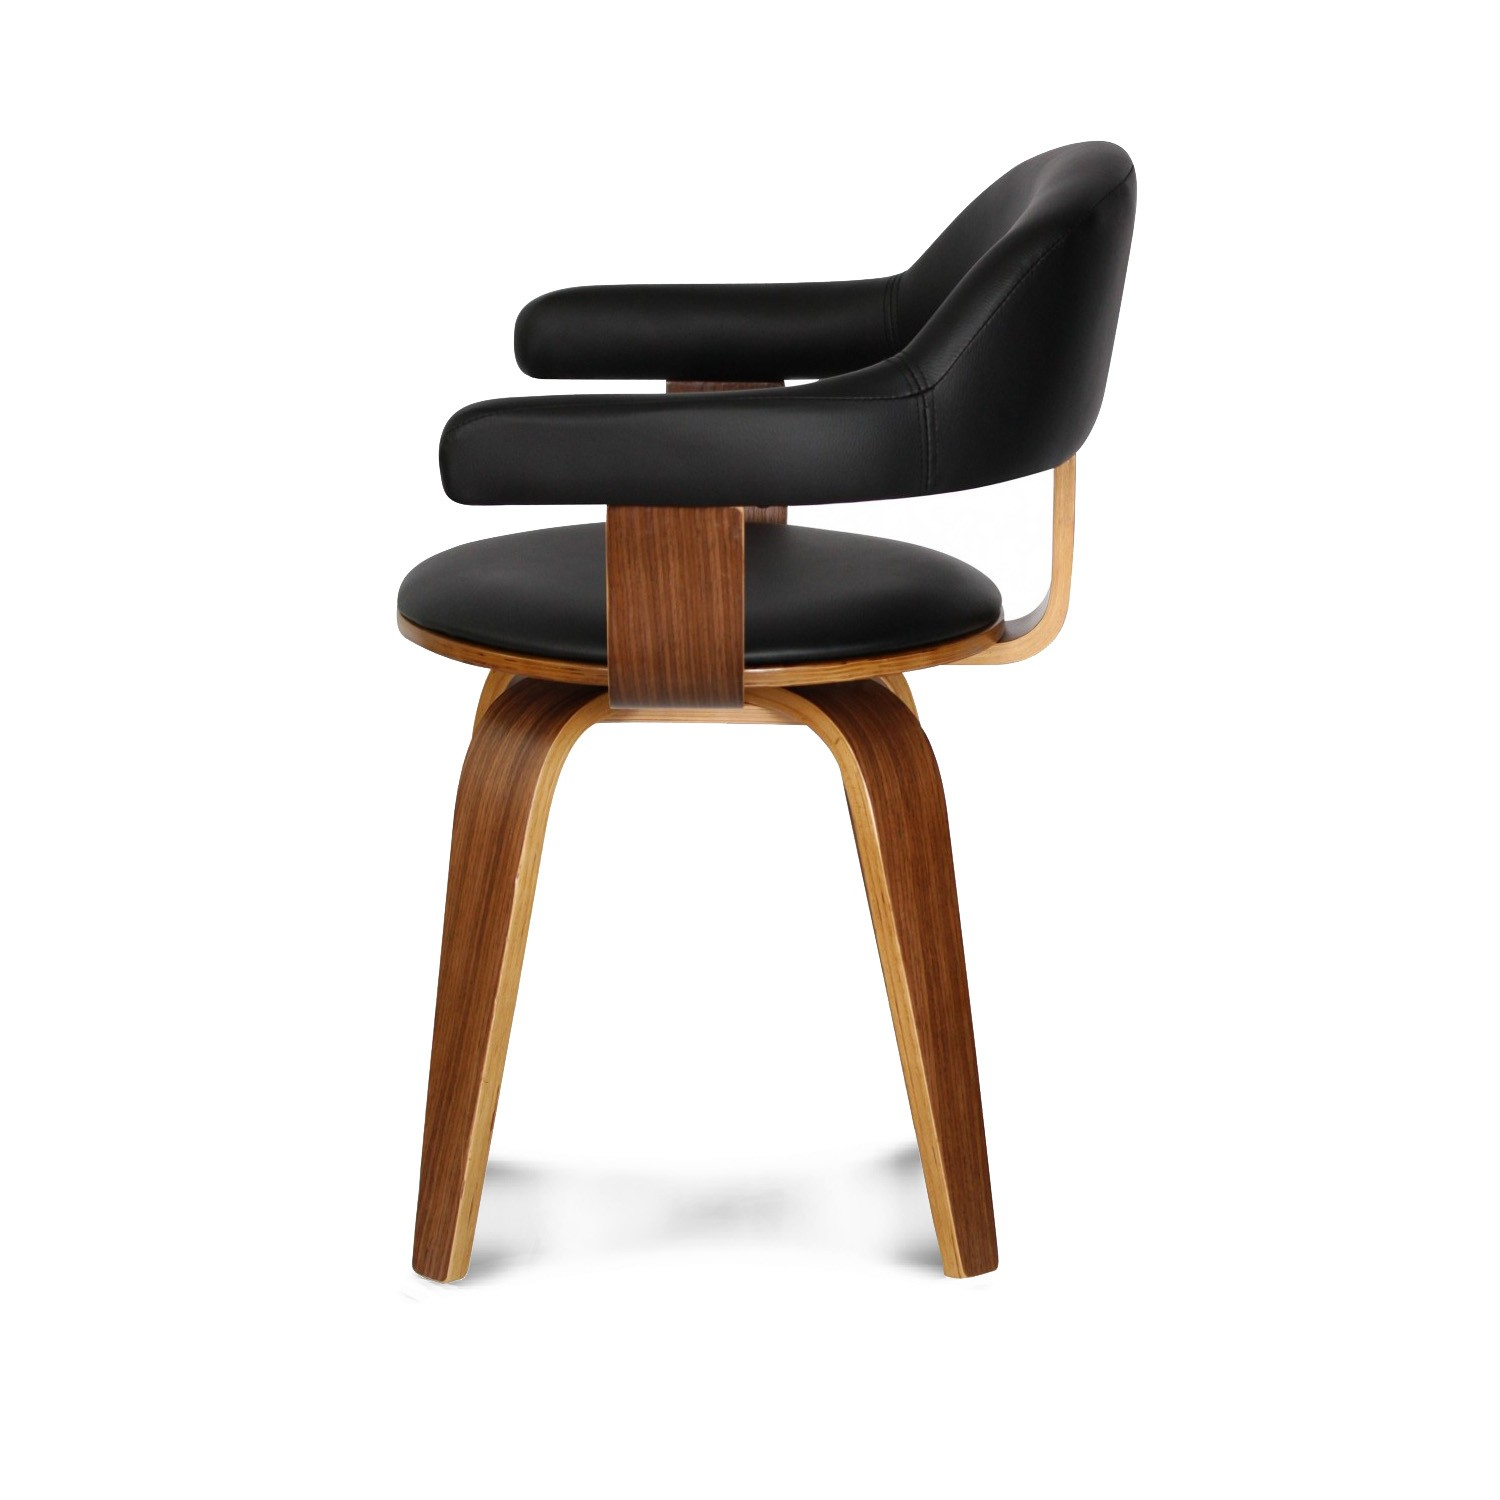 Chaise Design Scandinave Rotative Noire PYORIVA